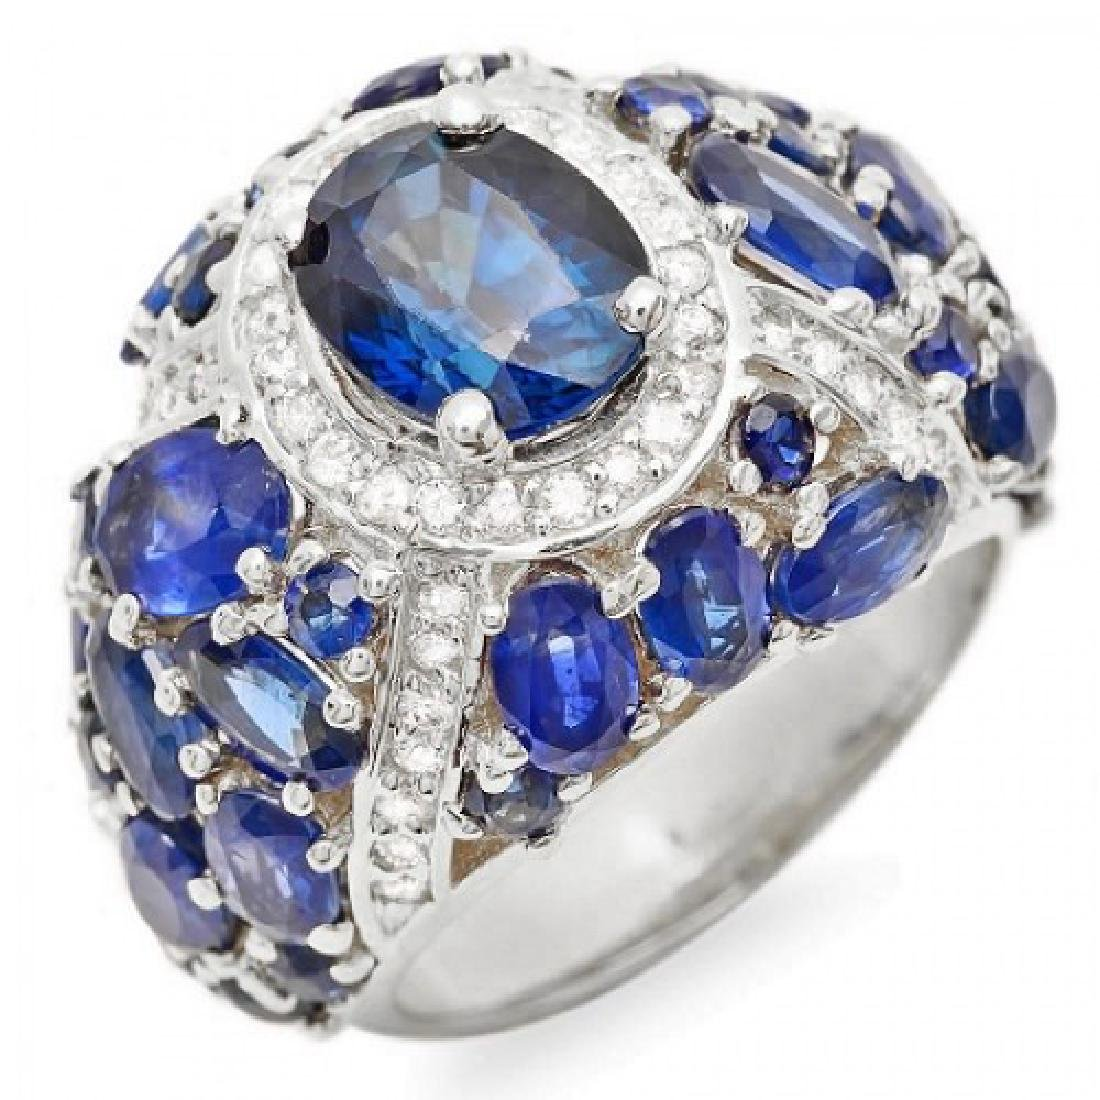 8.13 Carat Natural Sapphire 18K Solid White Gold